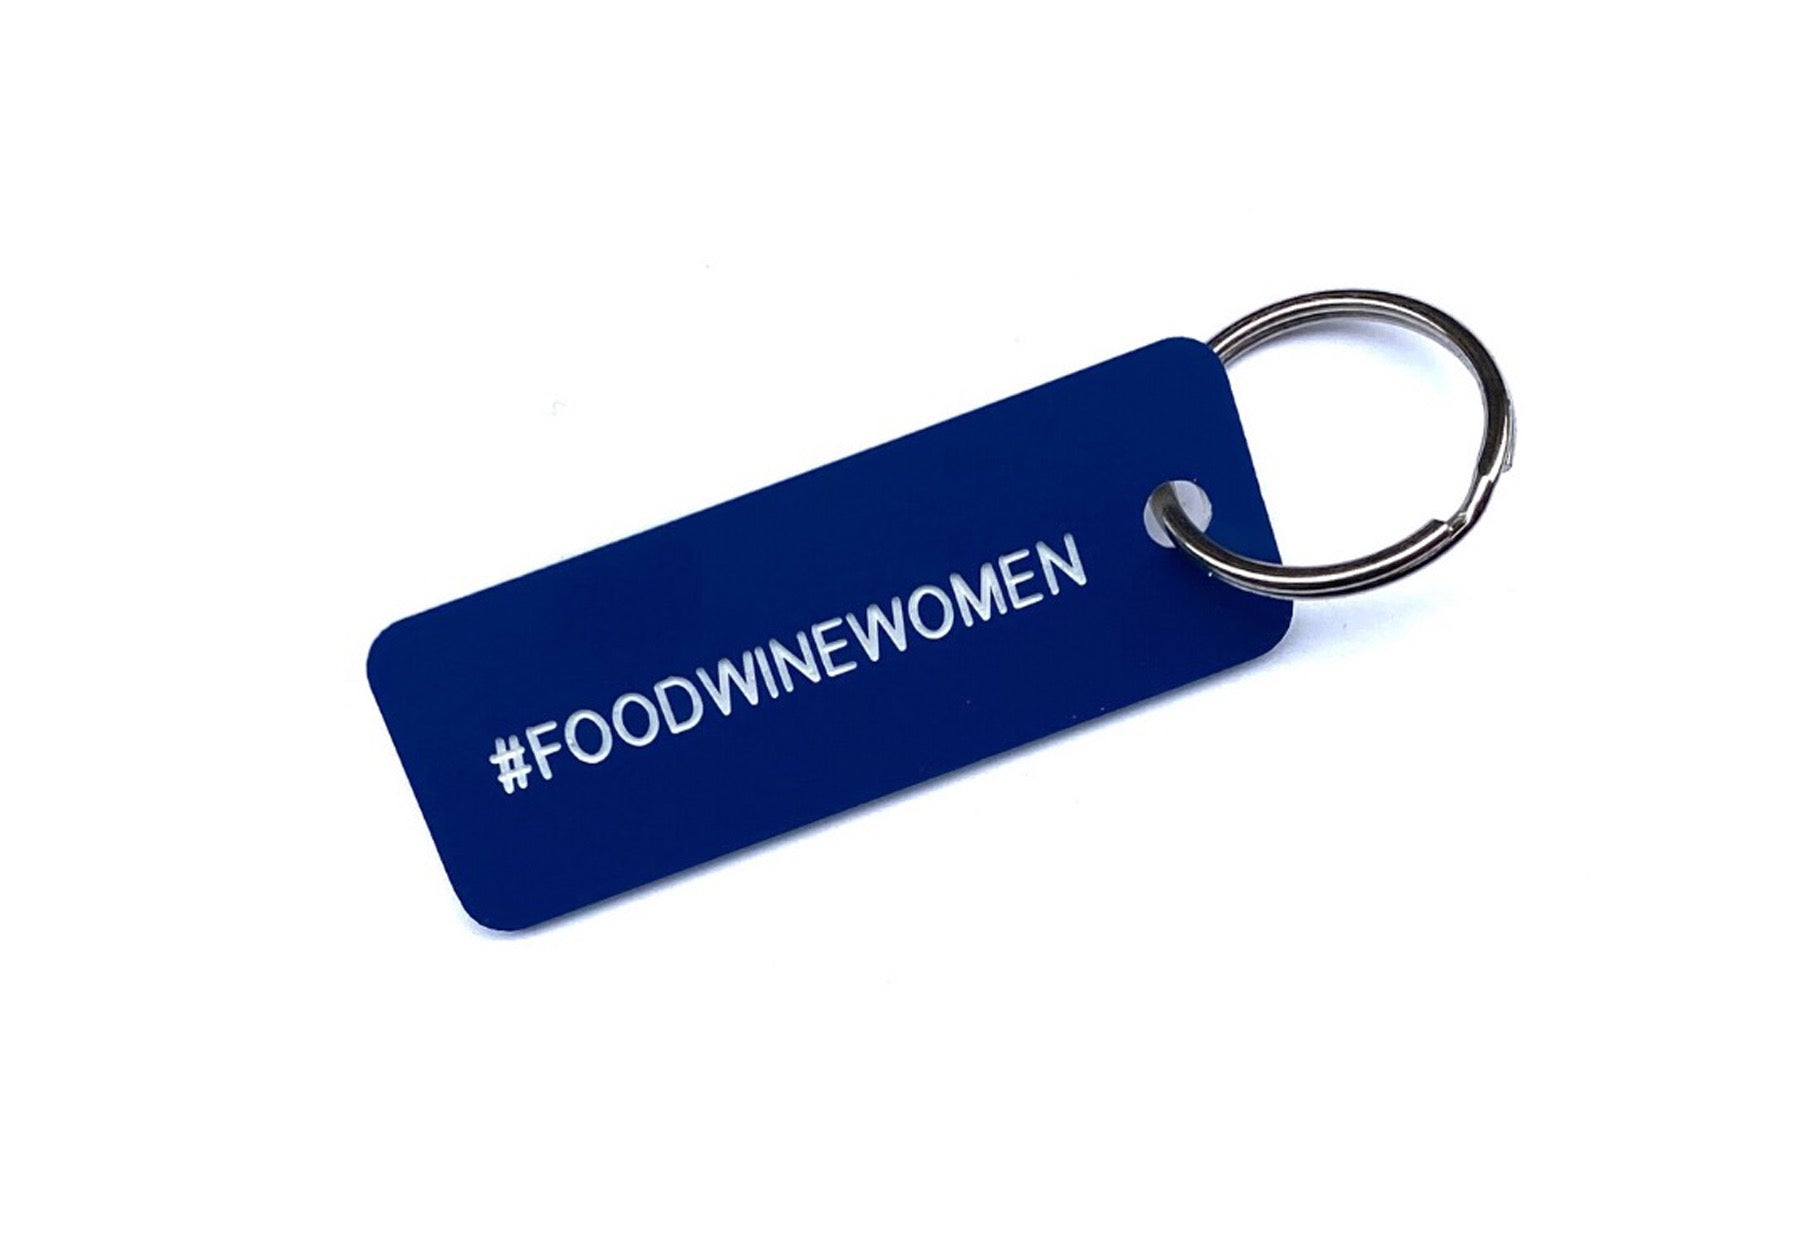 #FOODWINEWOMEN Key Tag